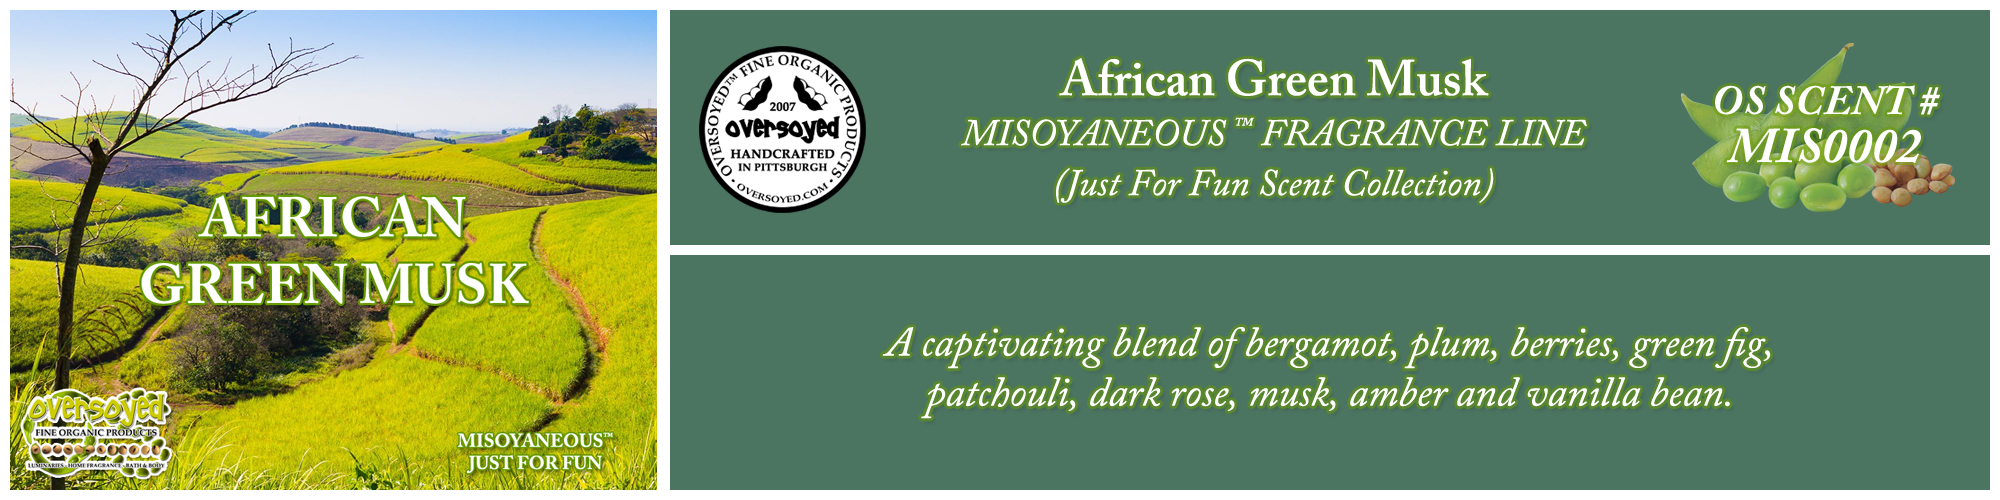 African Green Musk Handcrafted Products Collection